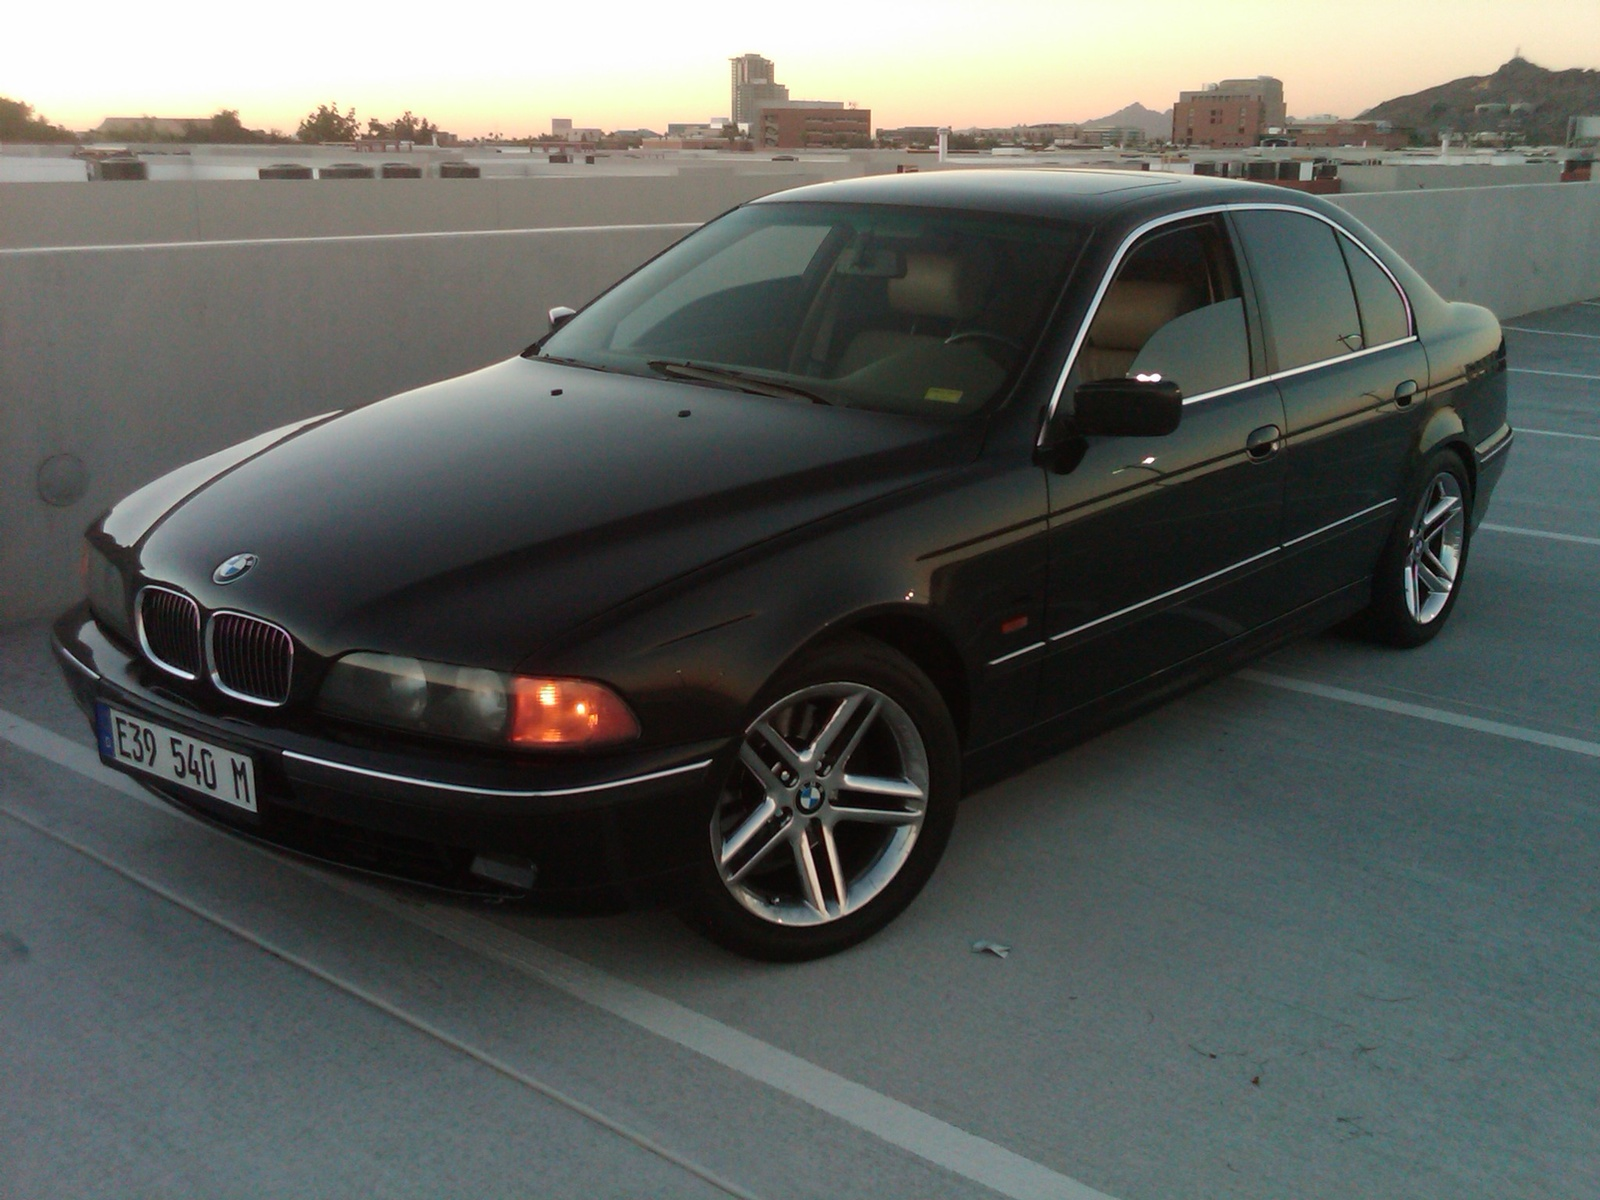 1997 Bmw 540 Related Keywords Suggestions Long Tail 528i Engine Diagram 318ti Free Image For User